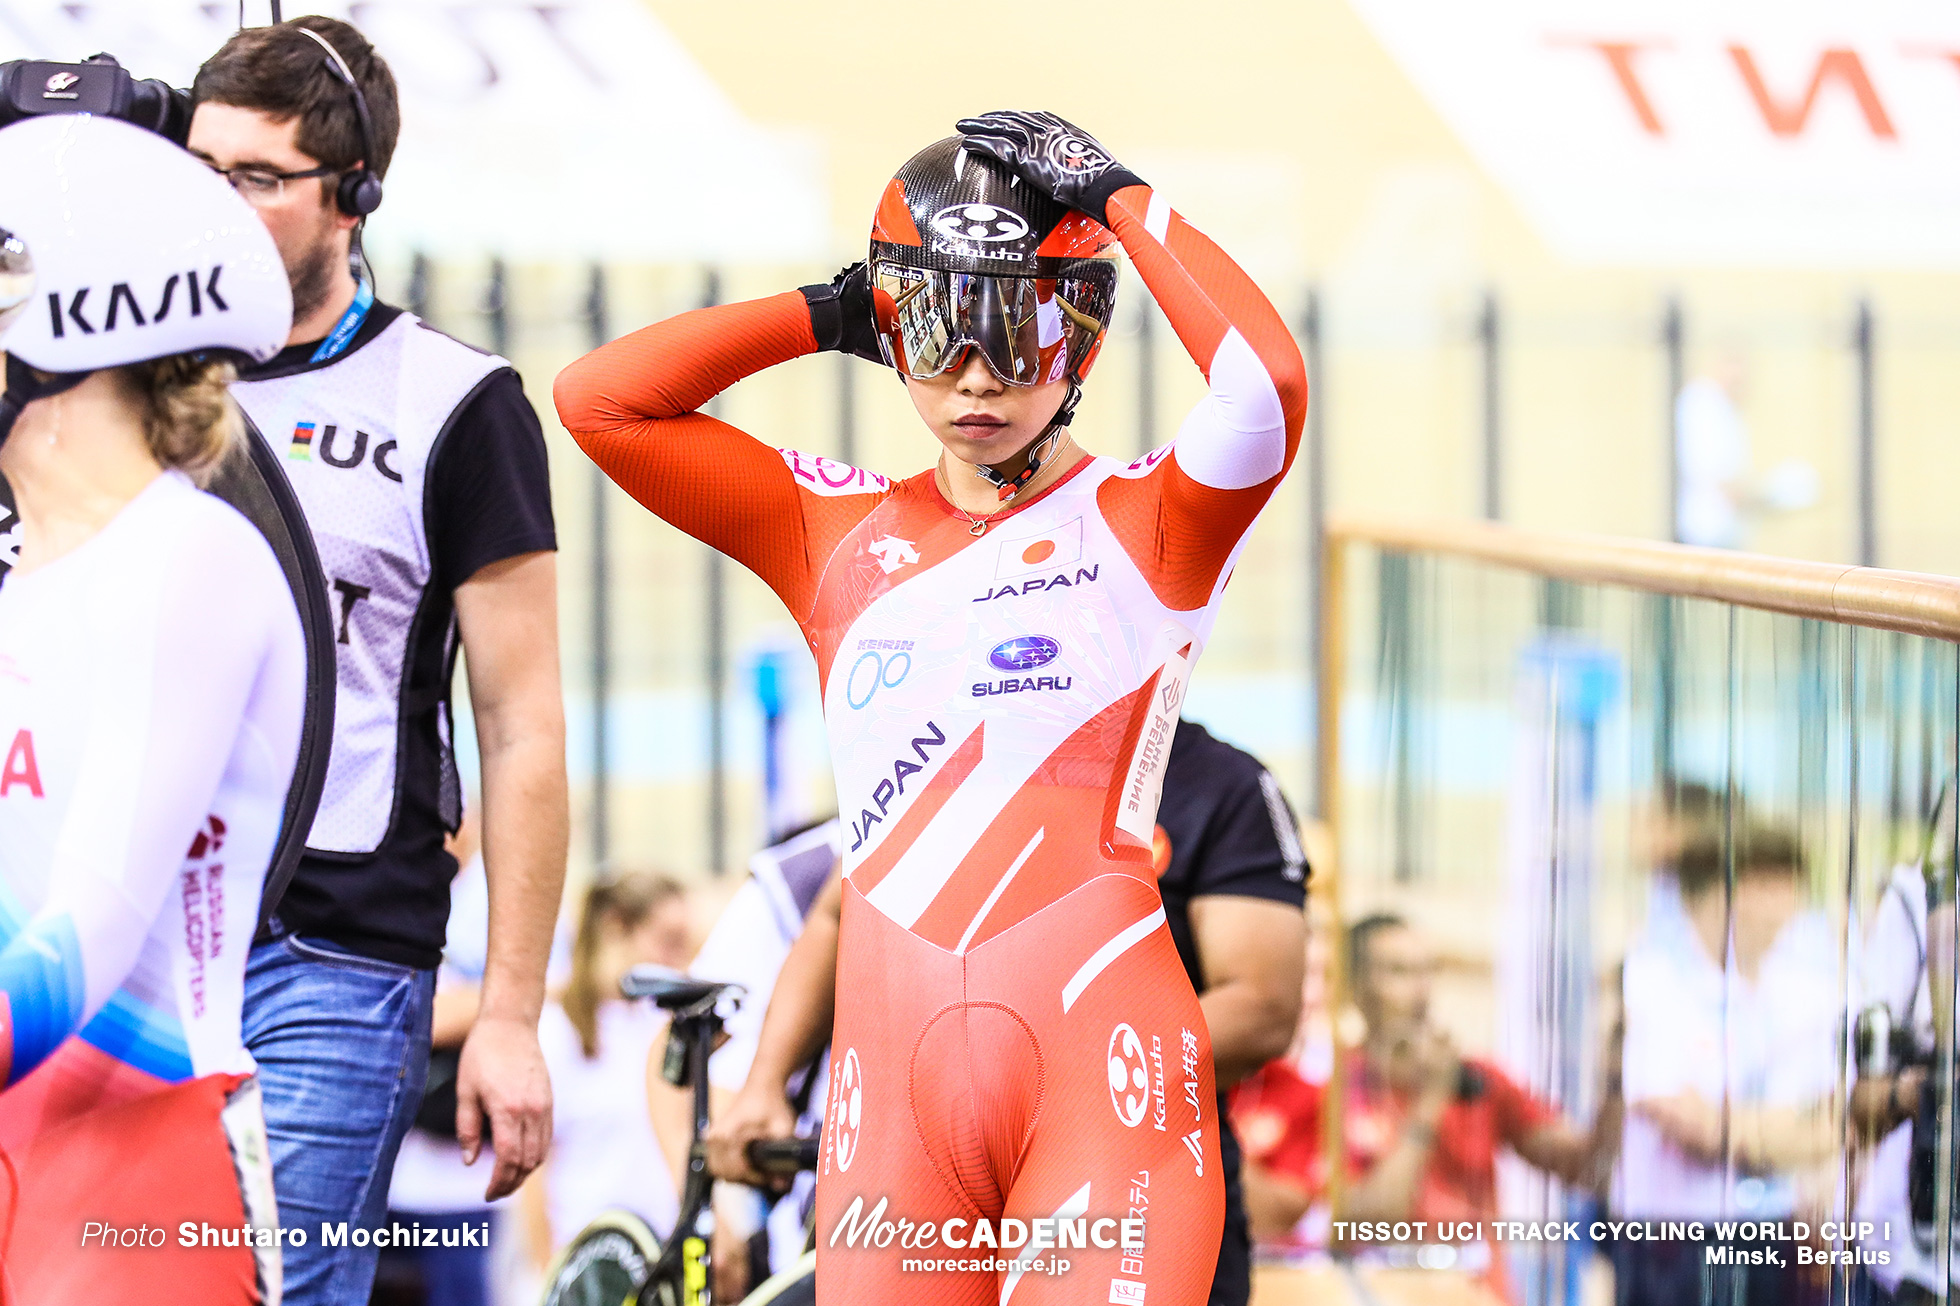 2nd Round / Women's Keirin / TISSOT UCI TRACK CYCLING WORLD CUP I, Minsk, Beralus